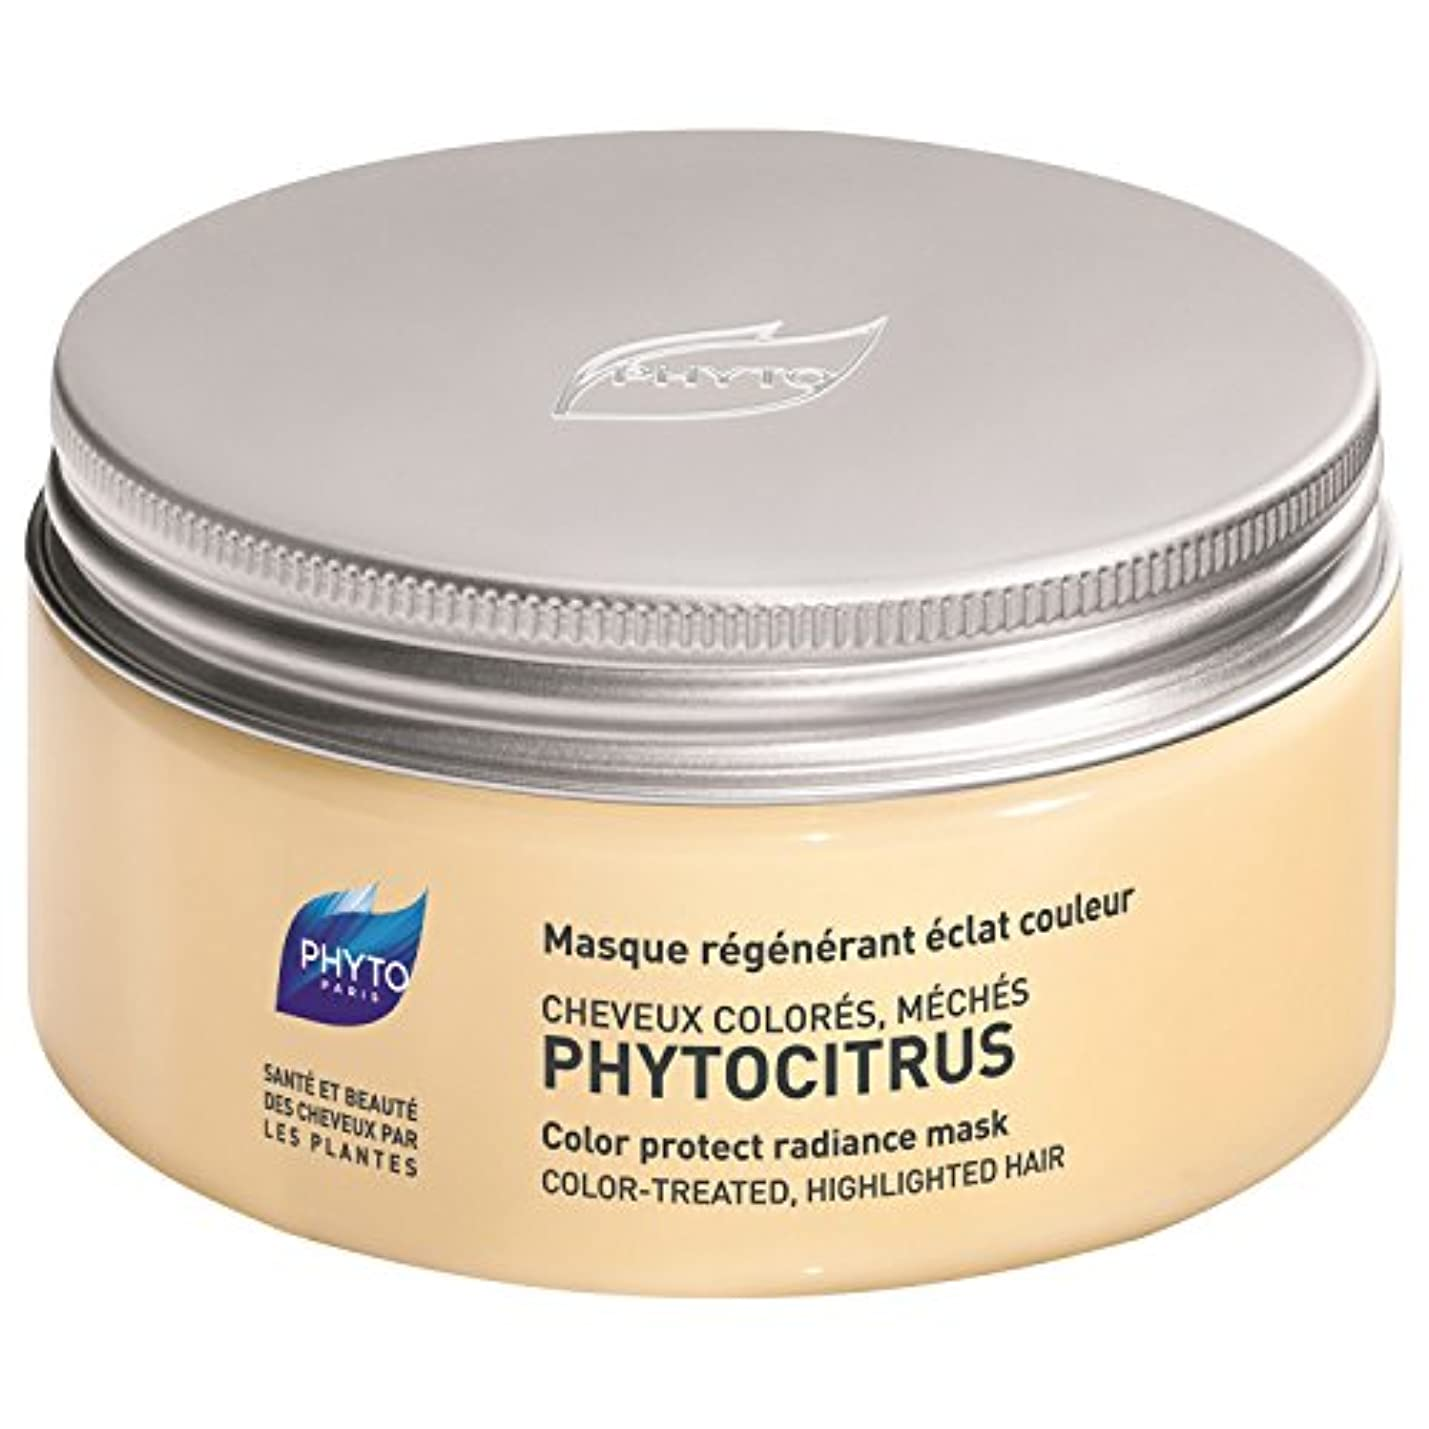 フィトPhytocitrus色保護放射輝度マスク200ミリリットル (Phyto) (x6) - Phyto Phytocitrus Colour Protect Radiance Mask 200ml (Pack of...